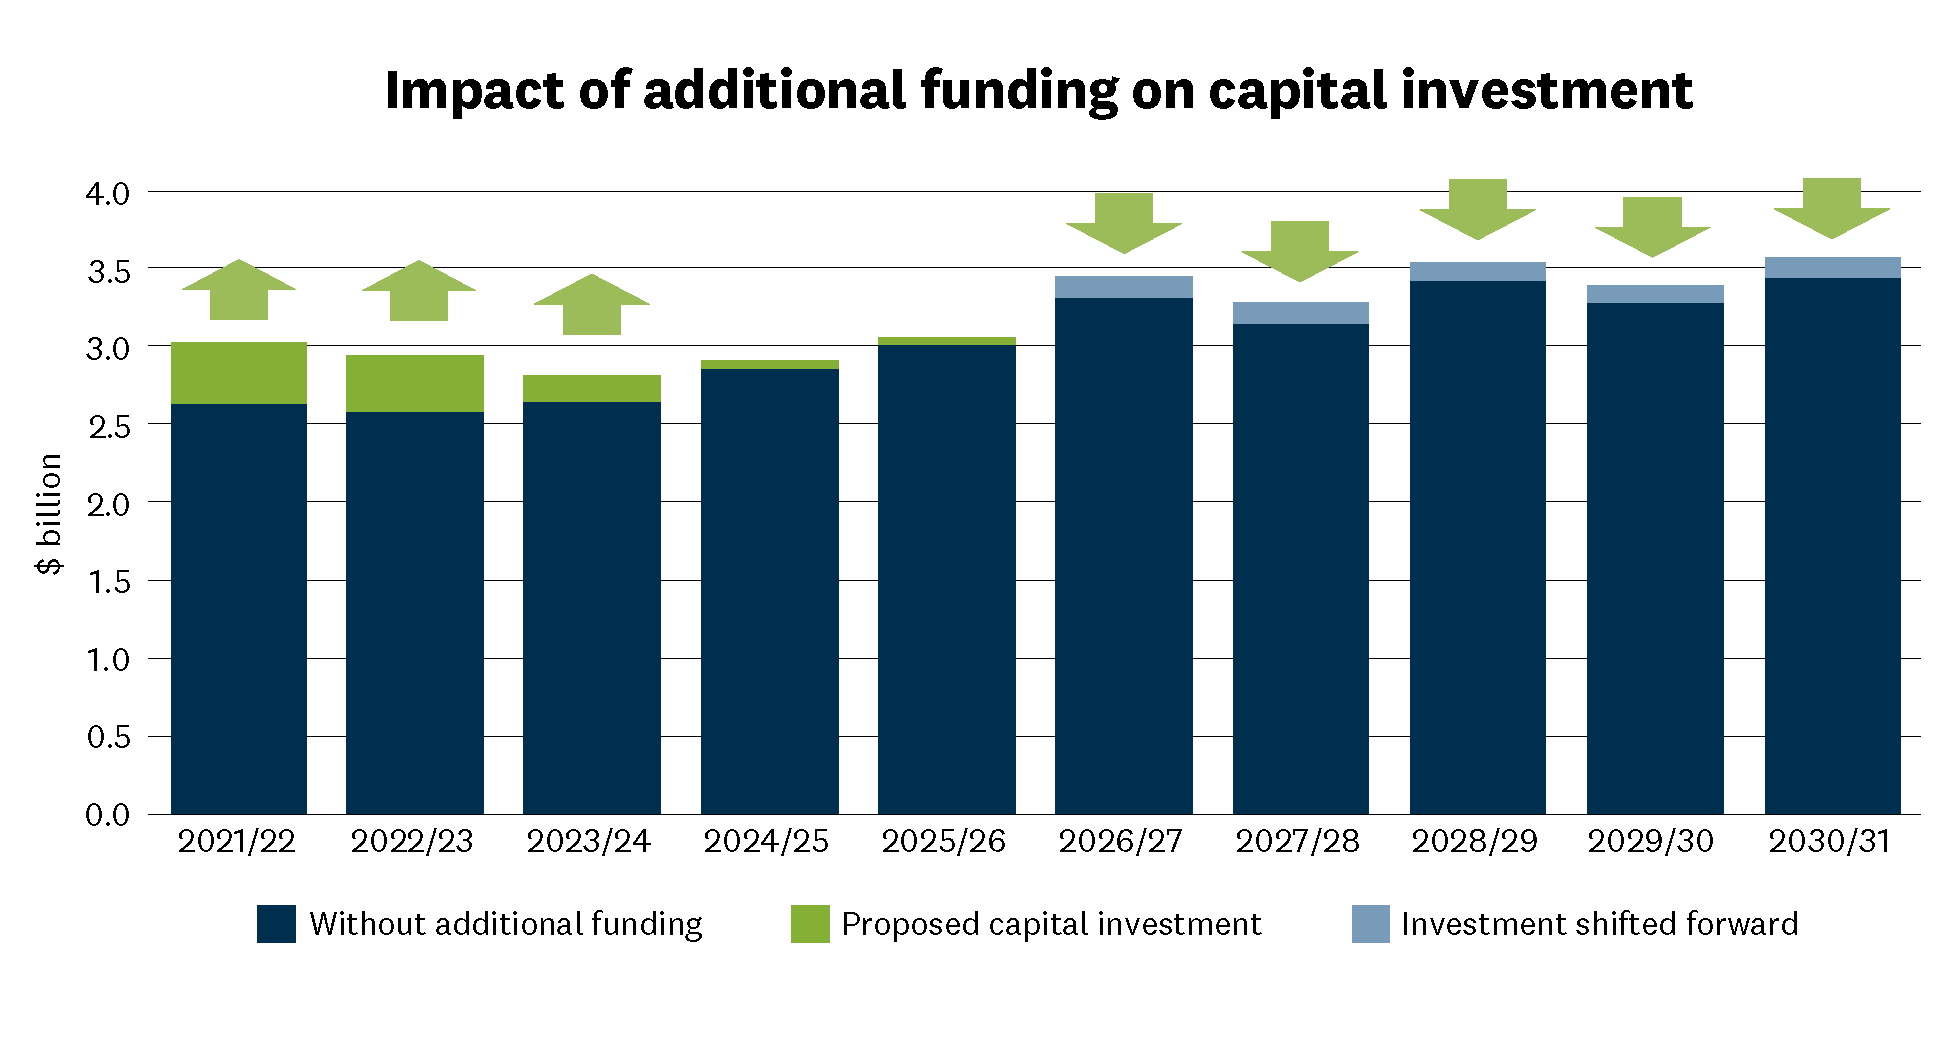 The graph shows our total group capital investment for each year under the proposed scenario compared to the scenario without additional funding. This shows how the $900 million has been brought forward 2021/22 Without additional funding $2.6 billion Proposed capital investment $3.0 billion 2022/23 Without additional funding $2,6 billion Proposed capital investment $2.9 billion 2023/24 Without additional funding $2.7 billion Proposed capital investment $2.8 billion 2024/25 Without additional funding $2.9 billion Proposed capital investment $2.9 billion 2025/26 Without additional funding $3.0 billion Proposed capital investment $3,1 billion 2026/2027 Without additional funding $3.5 billion Proposed capital investment $3.3 billion 2027/2028 Without additional funding $3.3 billion Proposed capital investment $3.2 billion 2028/2029 Without additional funding $3.5 billion Proposed capital investment $3.4 billion 2029/2030 Without additional funding $3.4 billion Proposed capital investment $3.3 billion 2030/2031 Without additional funding $3.6 billion Proposed capital investment $3.5 billion.